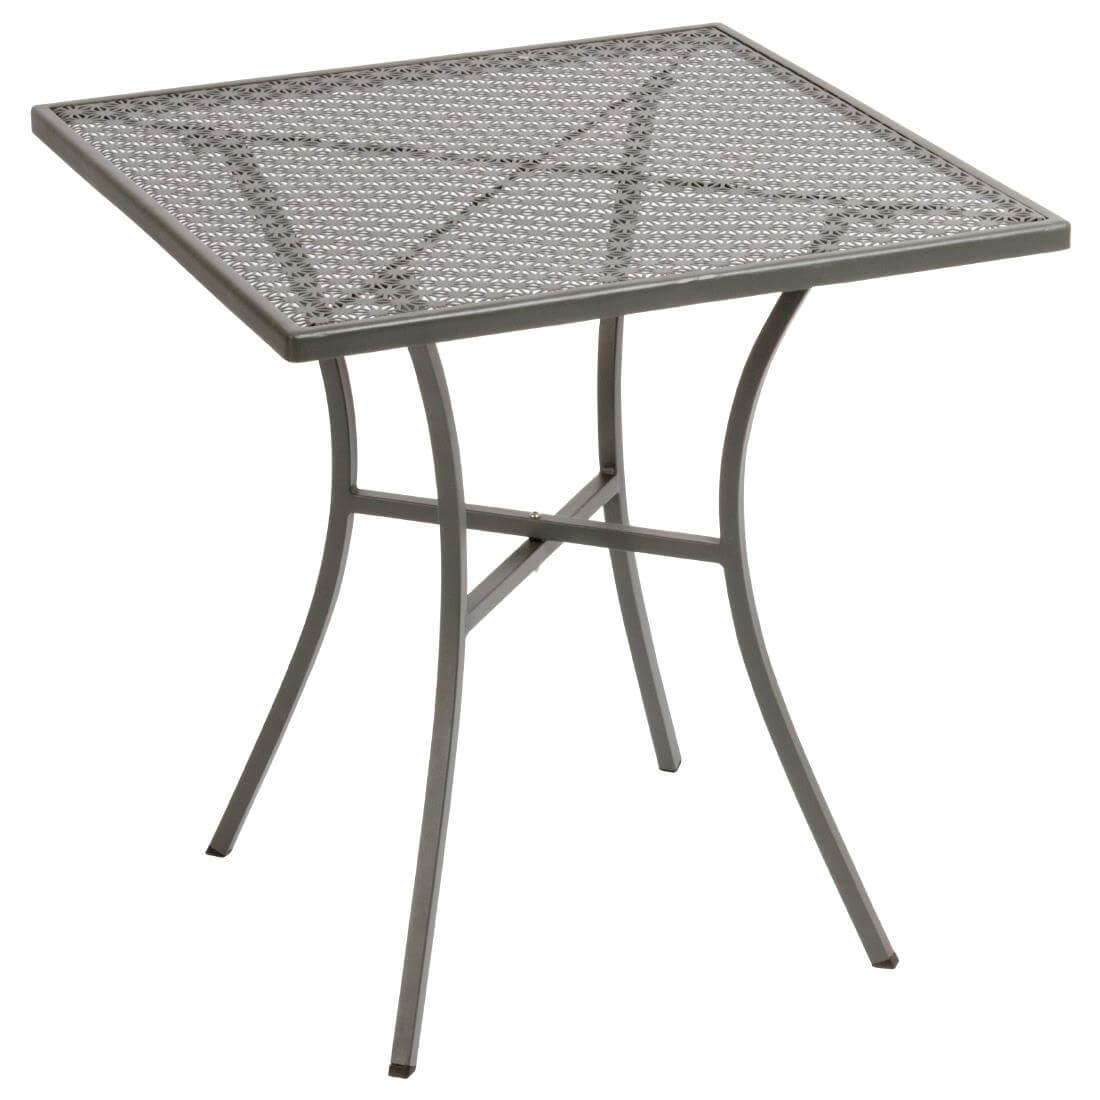 Steel Patterned Square Table - Grey